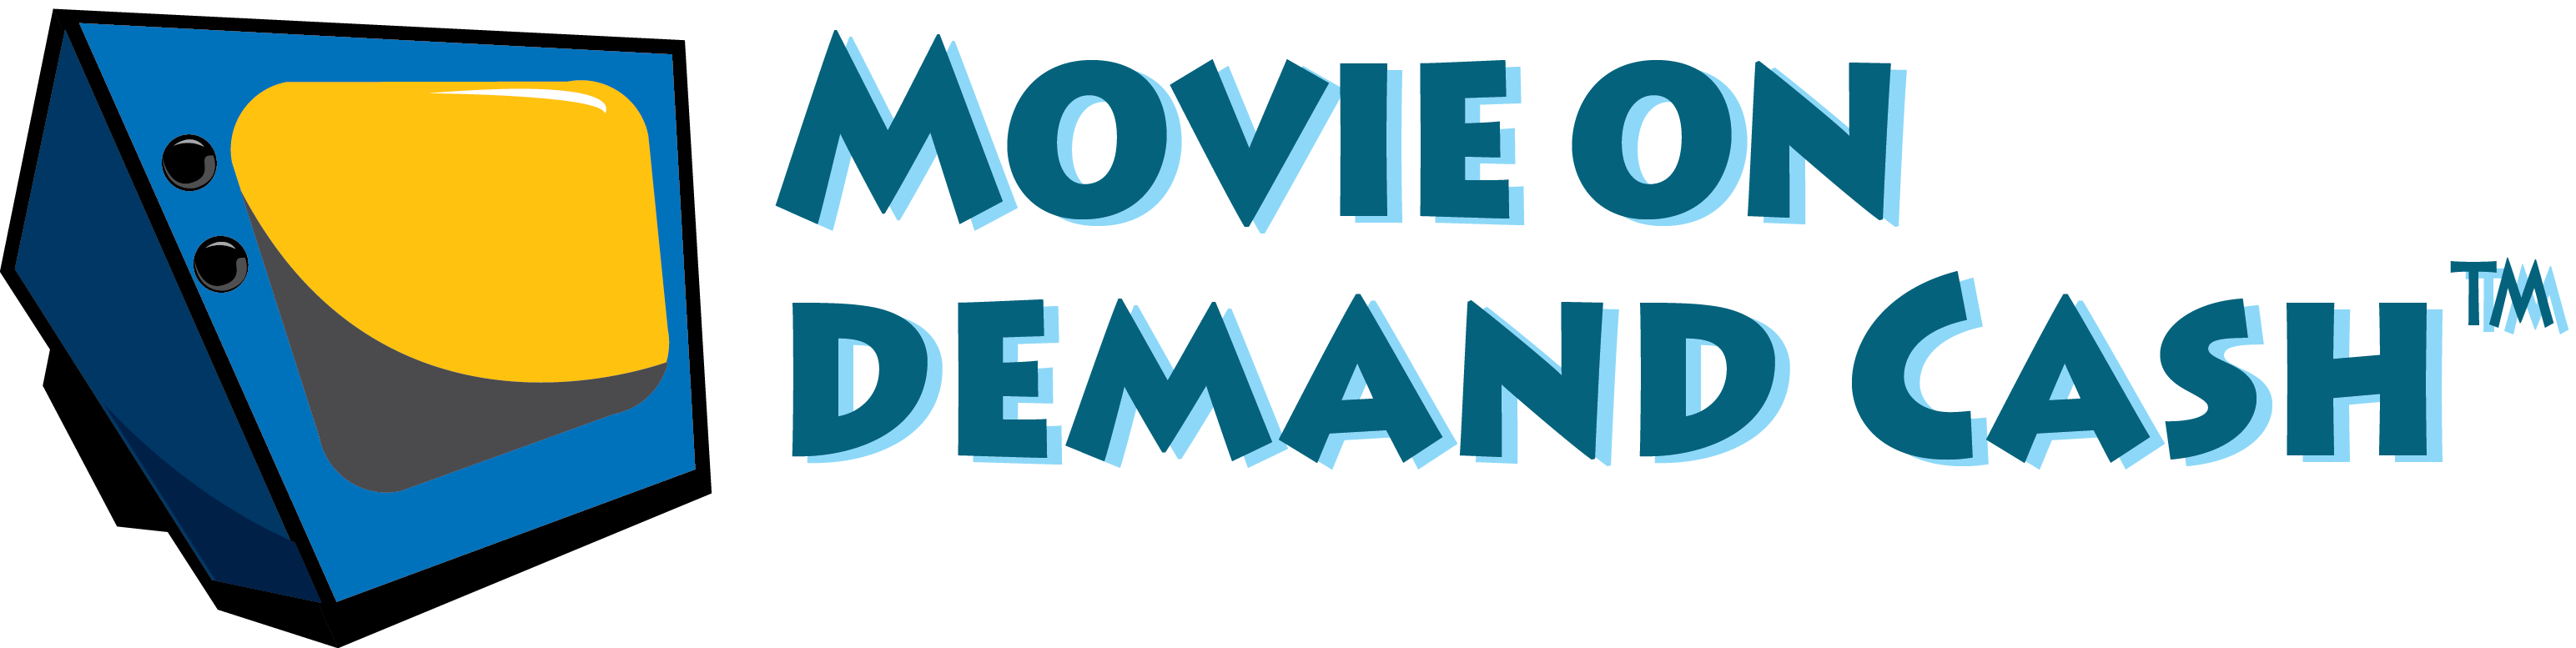 Movie-on-Demand-Cash logo-live